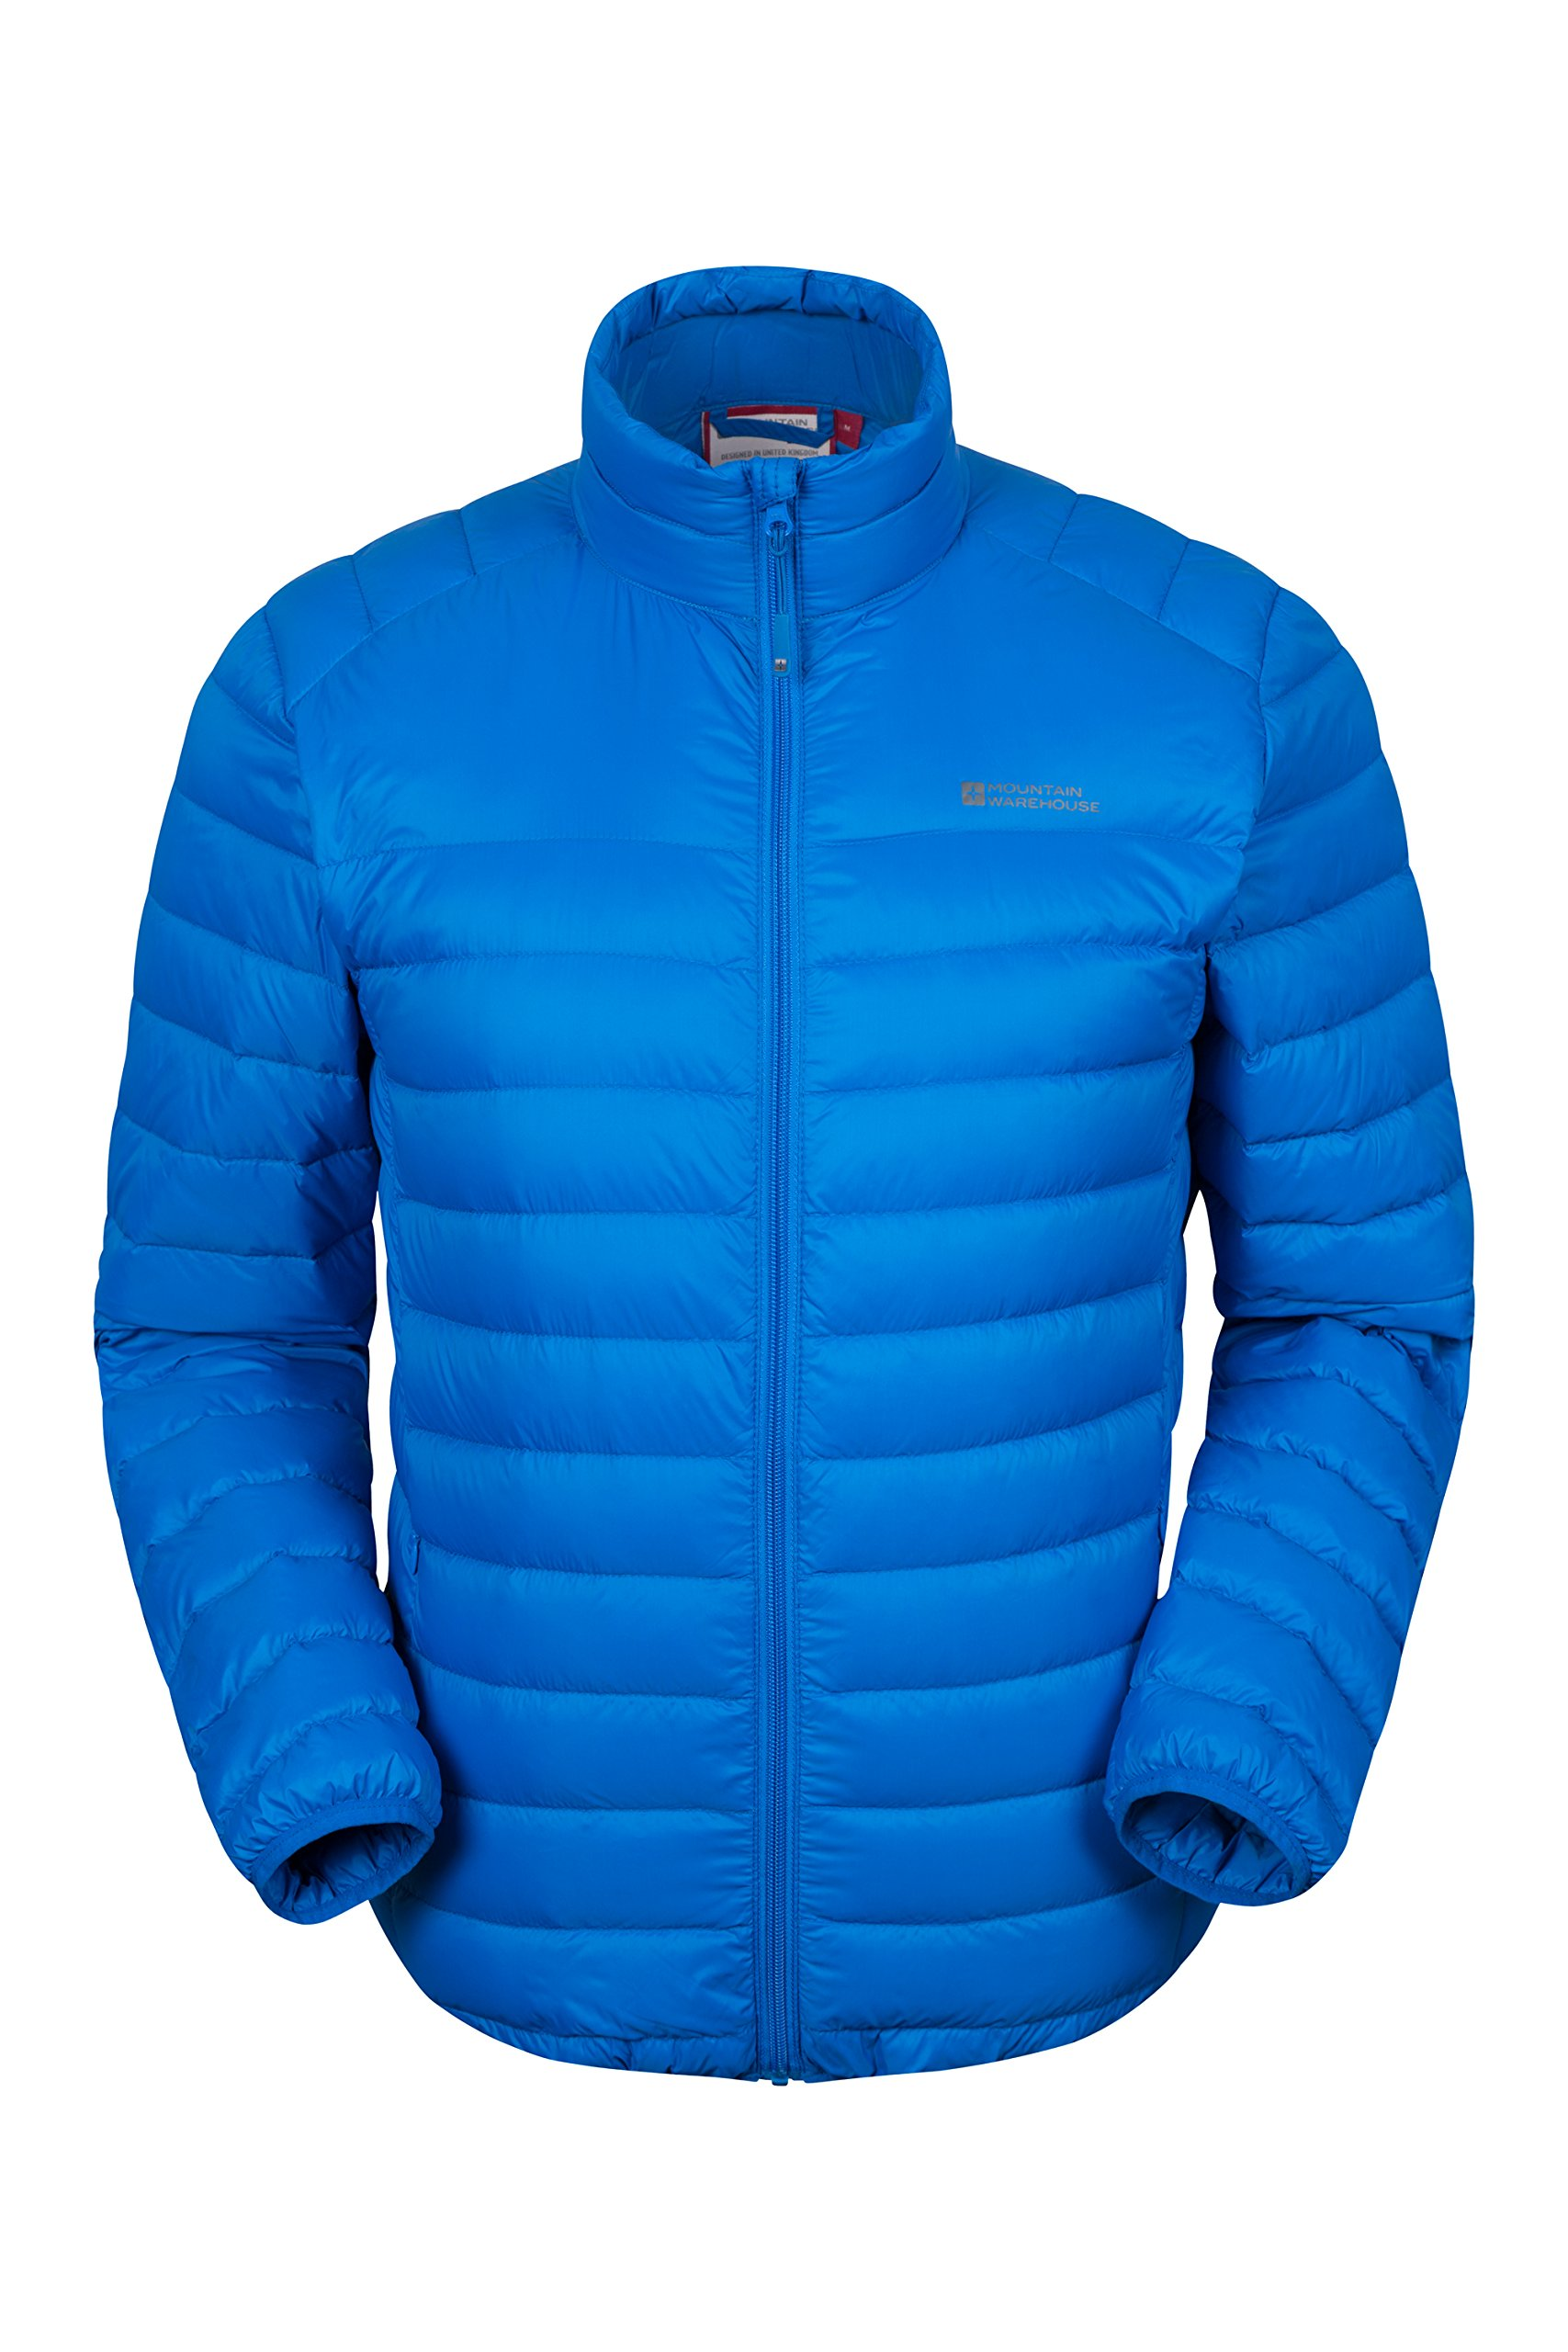 81M7L6QhskL - Mountain Warehouse Featherweight Mens Down Jacket - Lightweight Winter Coat, Easy Care, Packaway Bag, Water Resistant…